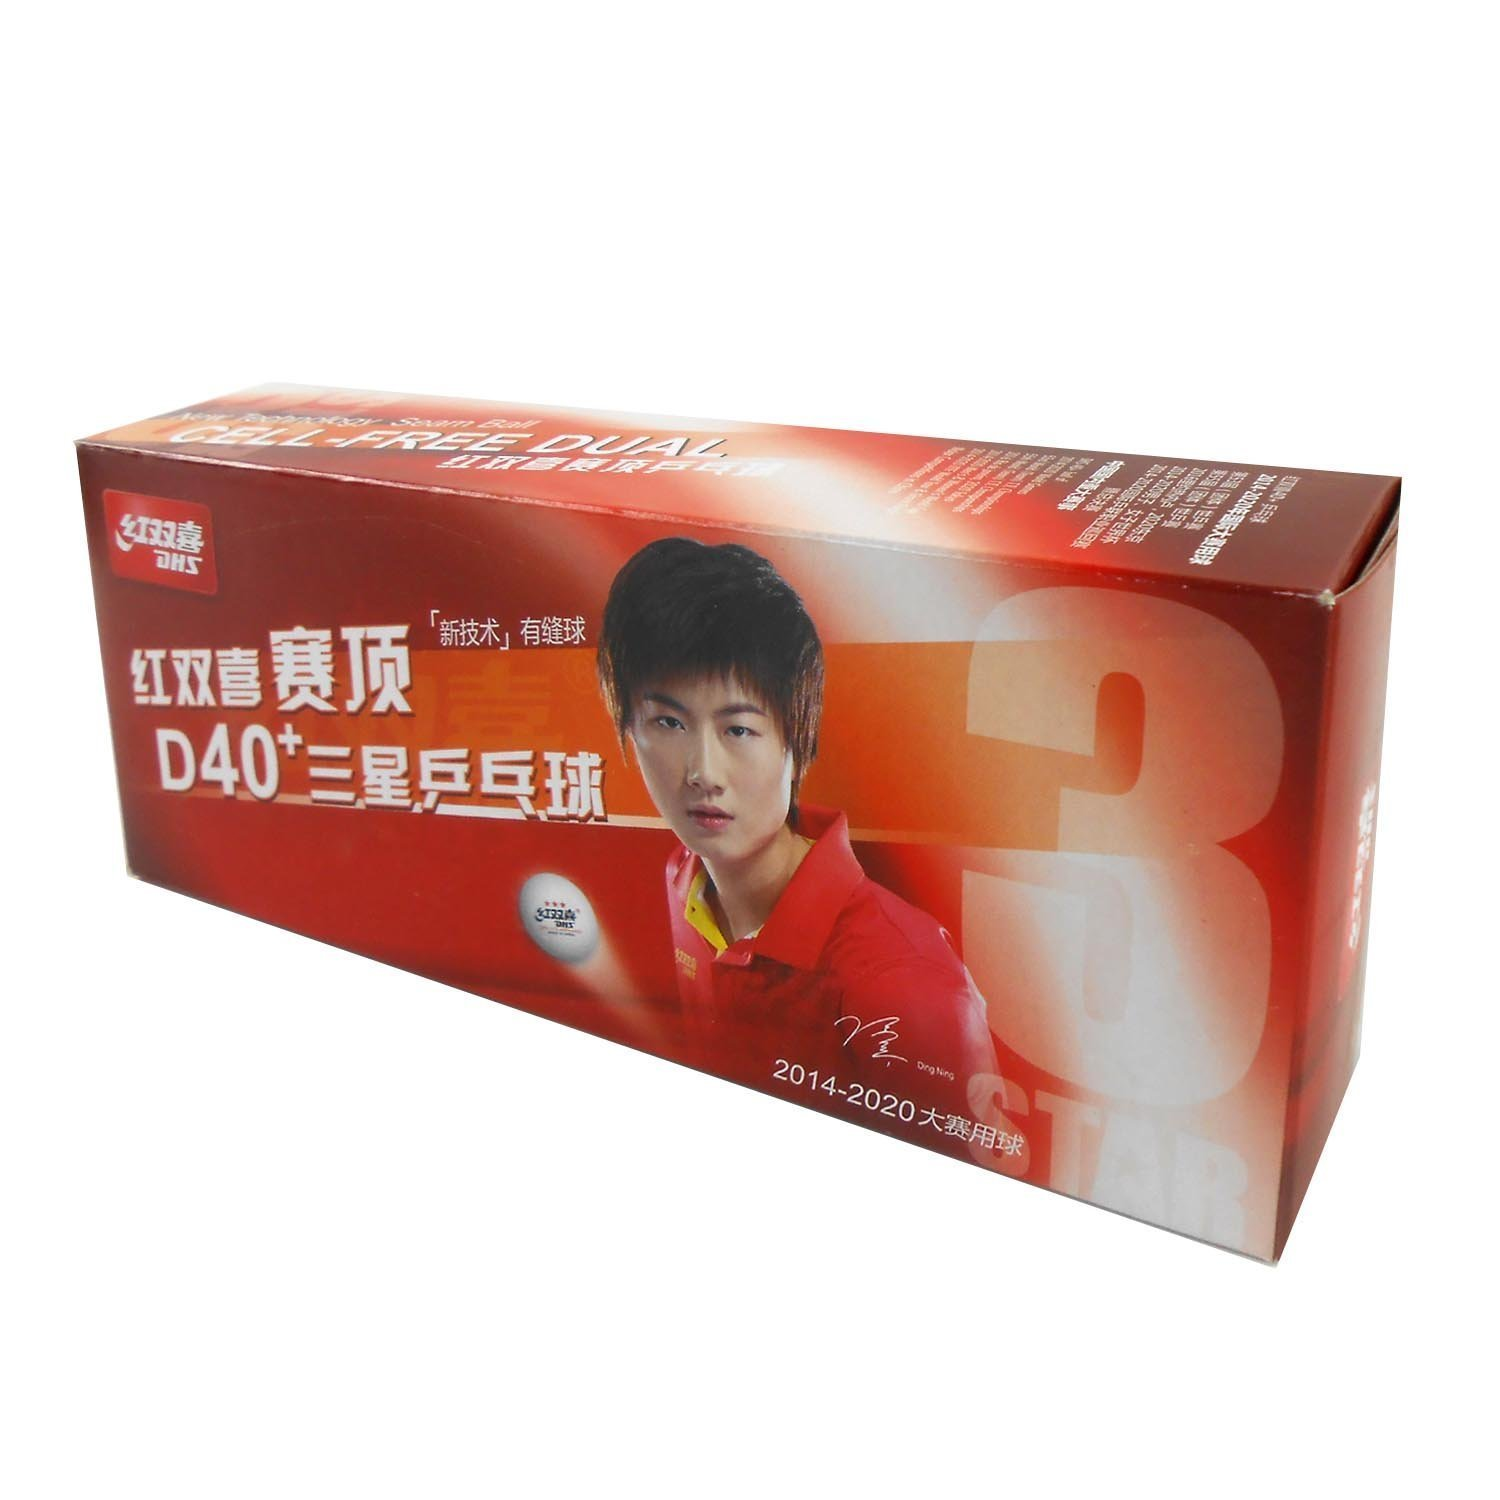 DHS 3 STAR ITTF 40+ Plastic Table Tennis Balls, 10 pieces